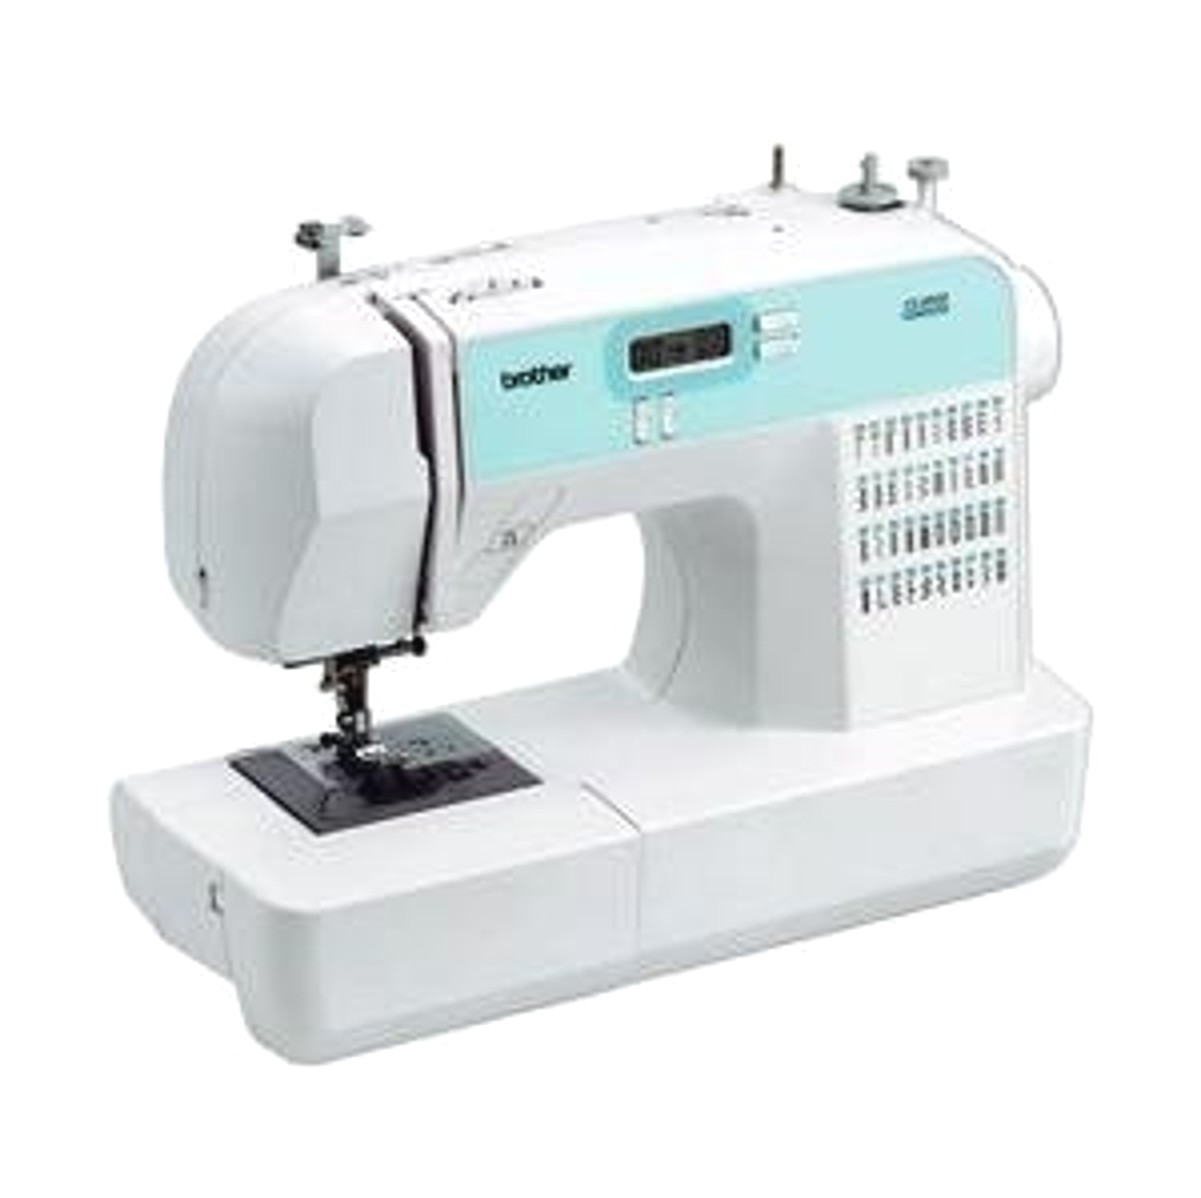 Brother CE4000 Sewing Machine Review